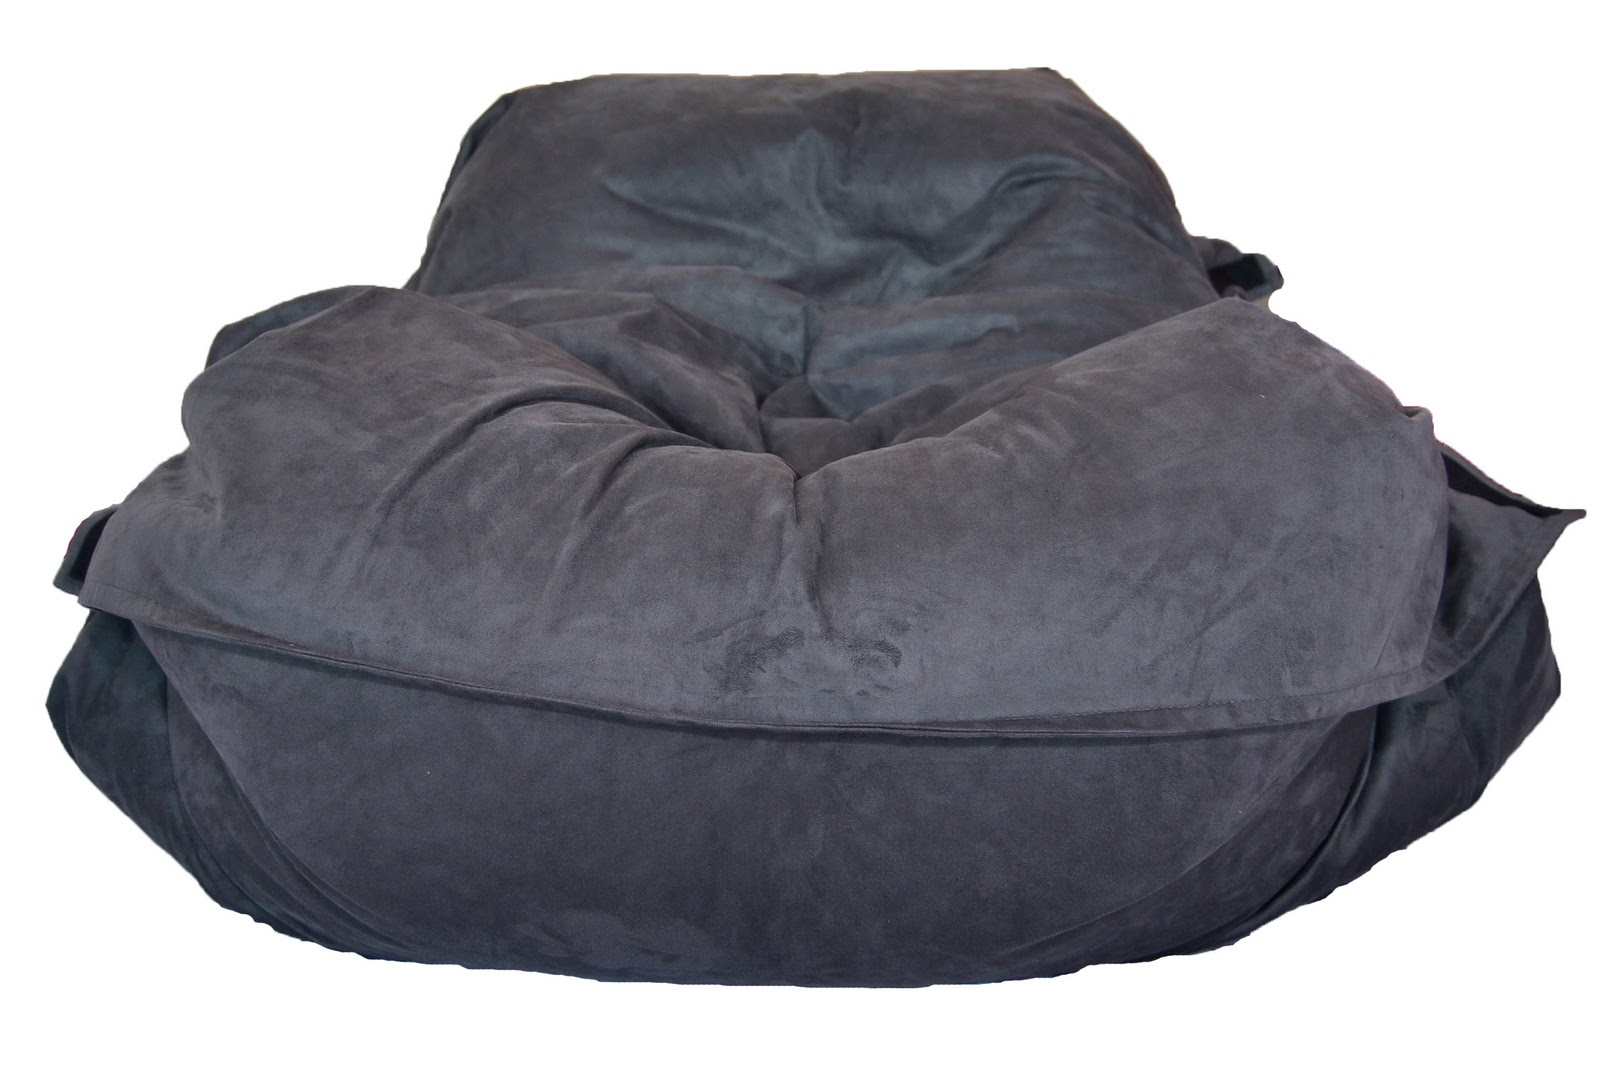 Bean Bags | Cheap Bean Bag Chairs | Bean bags Malaysia